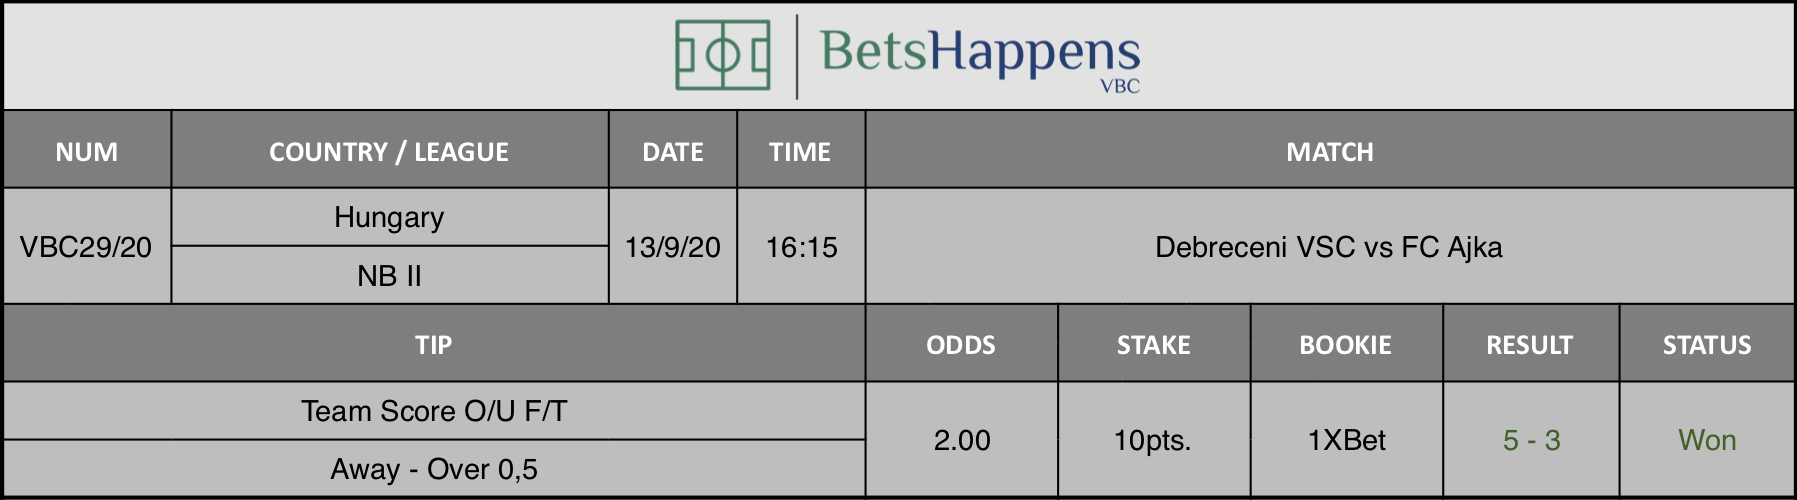 Results of our advice for the Debreceni VSC vs FC Ajka match in which Team Score O / U F / T Away Over 0.5 is recommended.